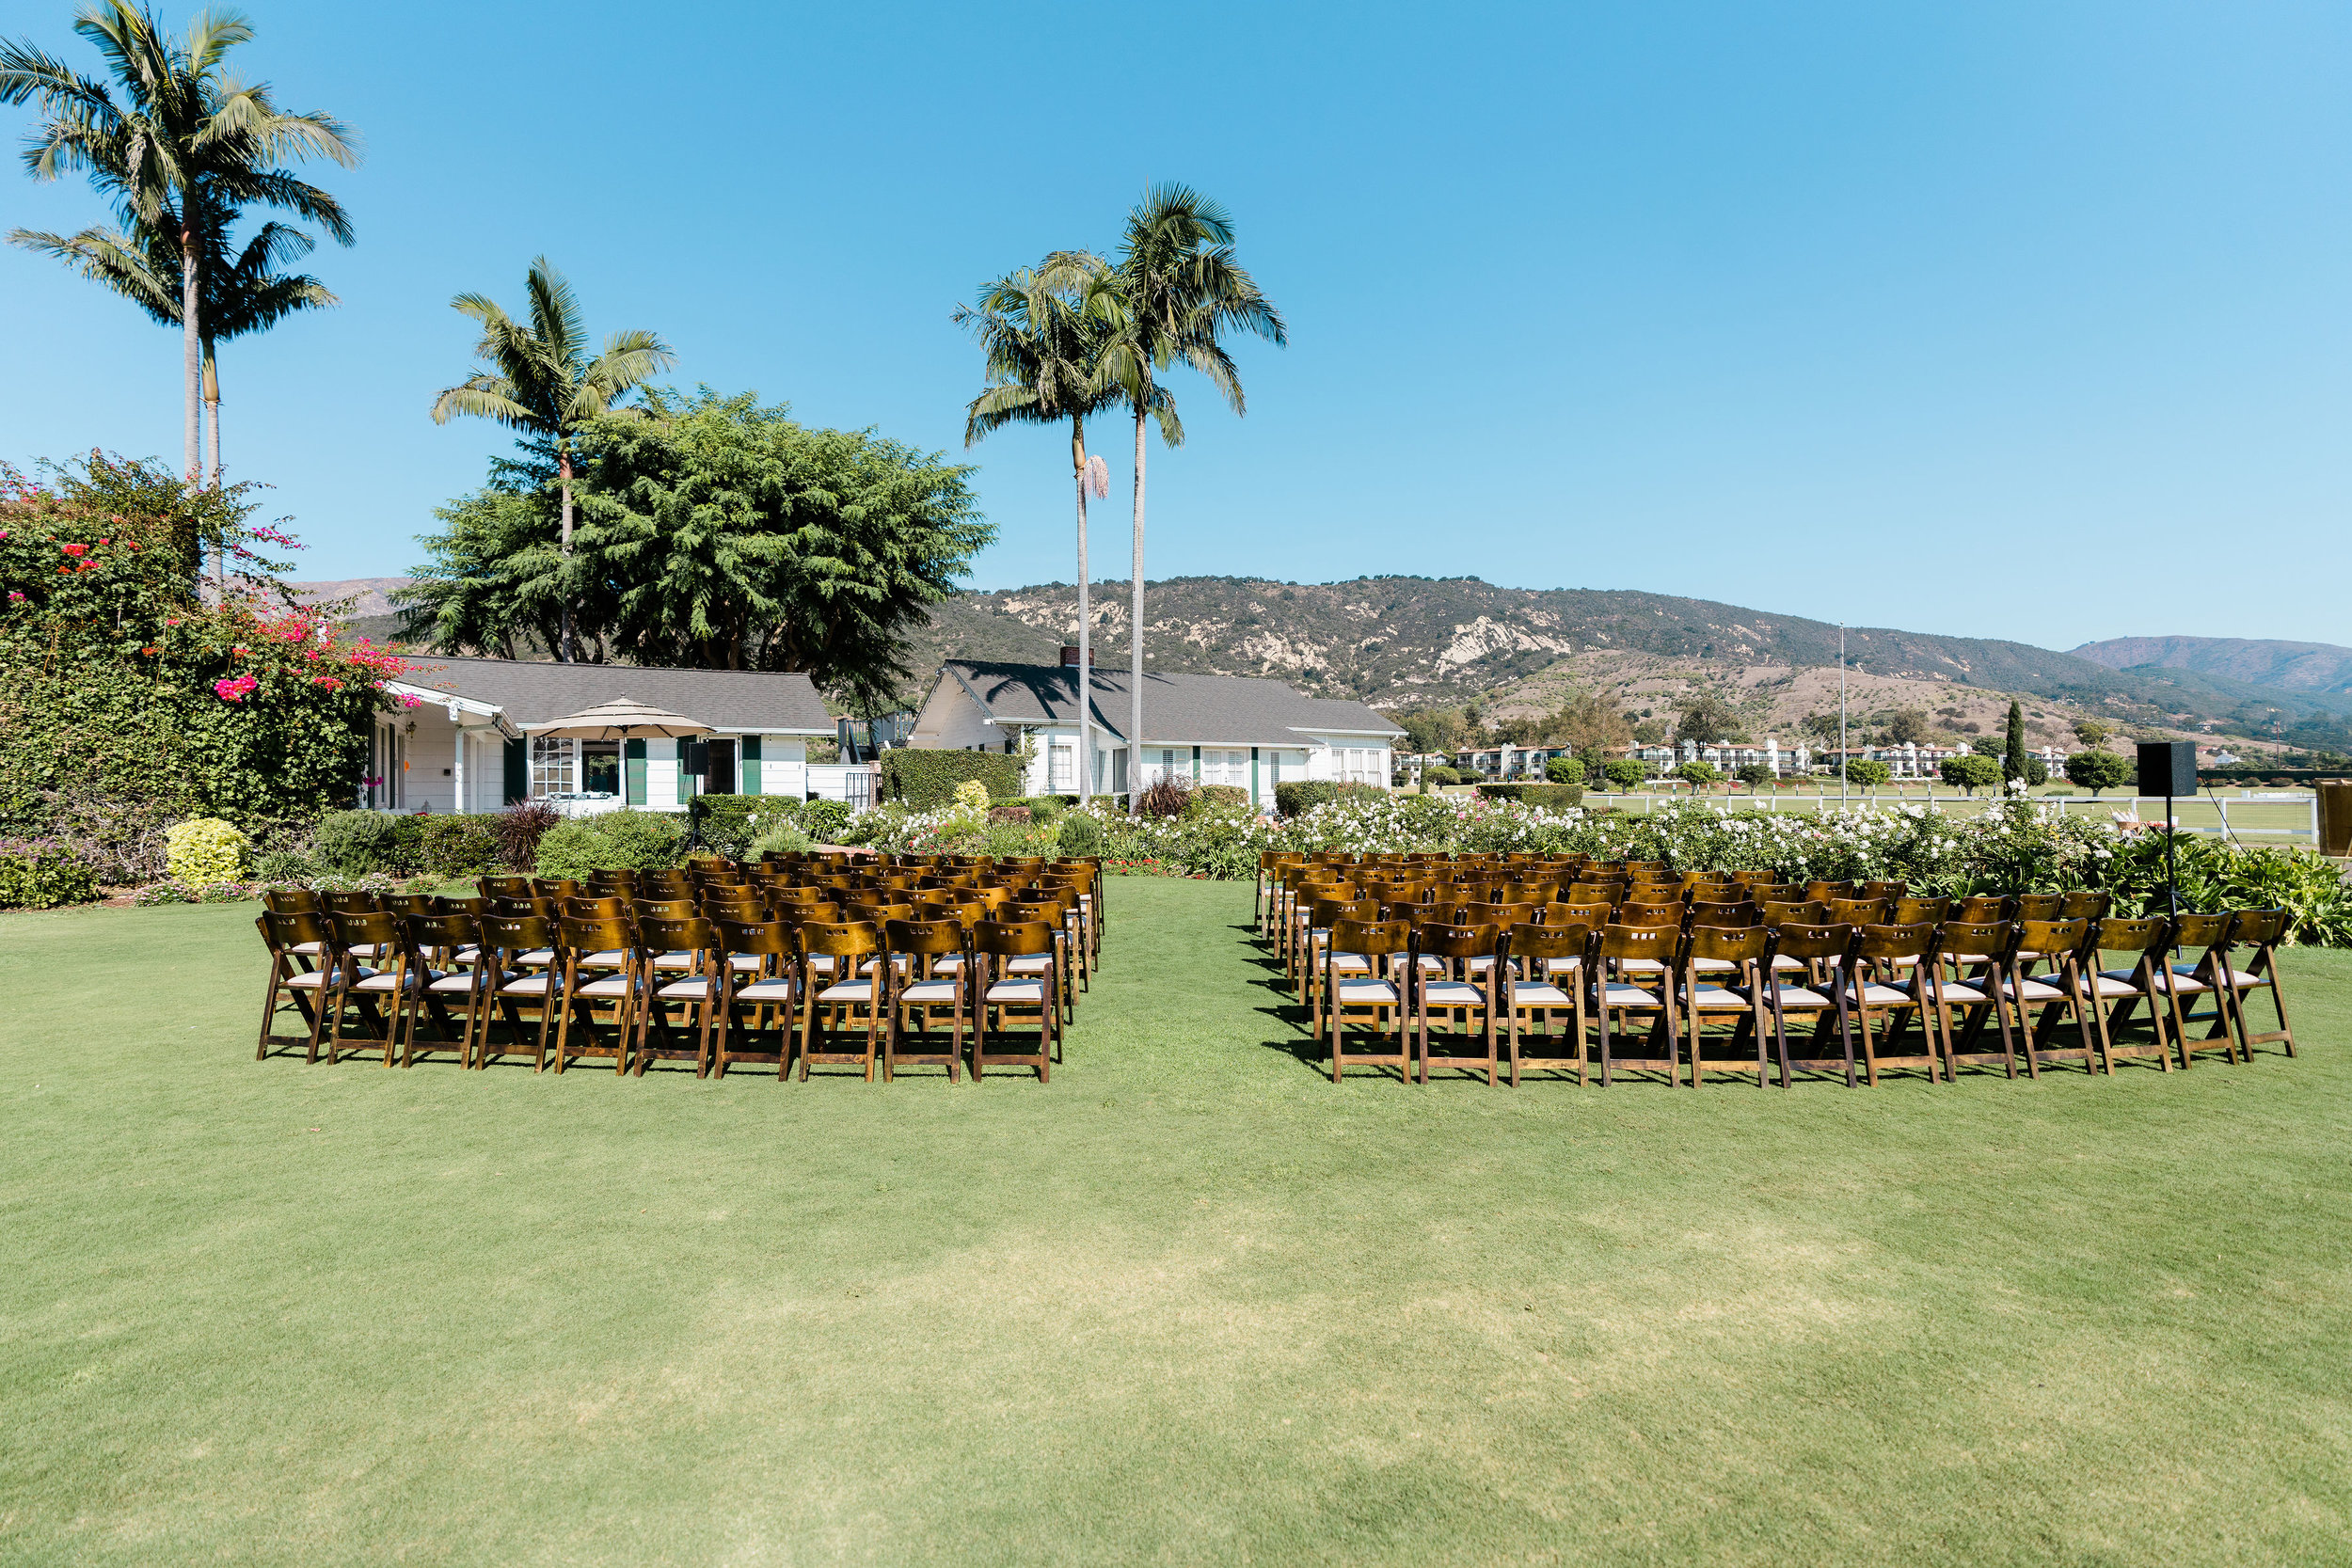 allie-shupe-tyler-wiggins-wedding-santa-barbara 001.jpg